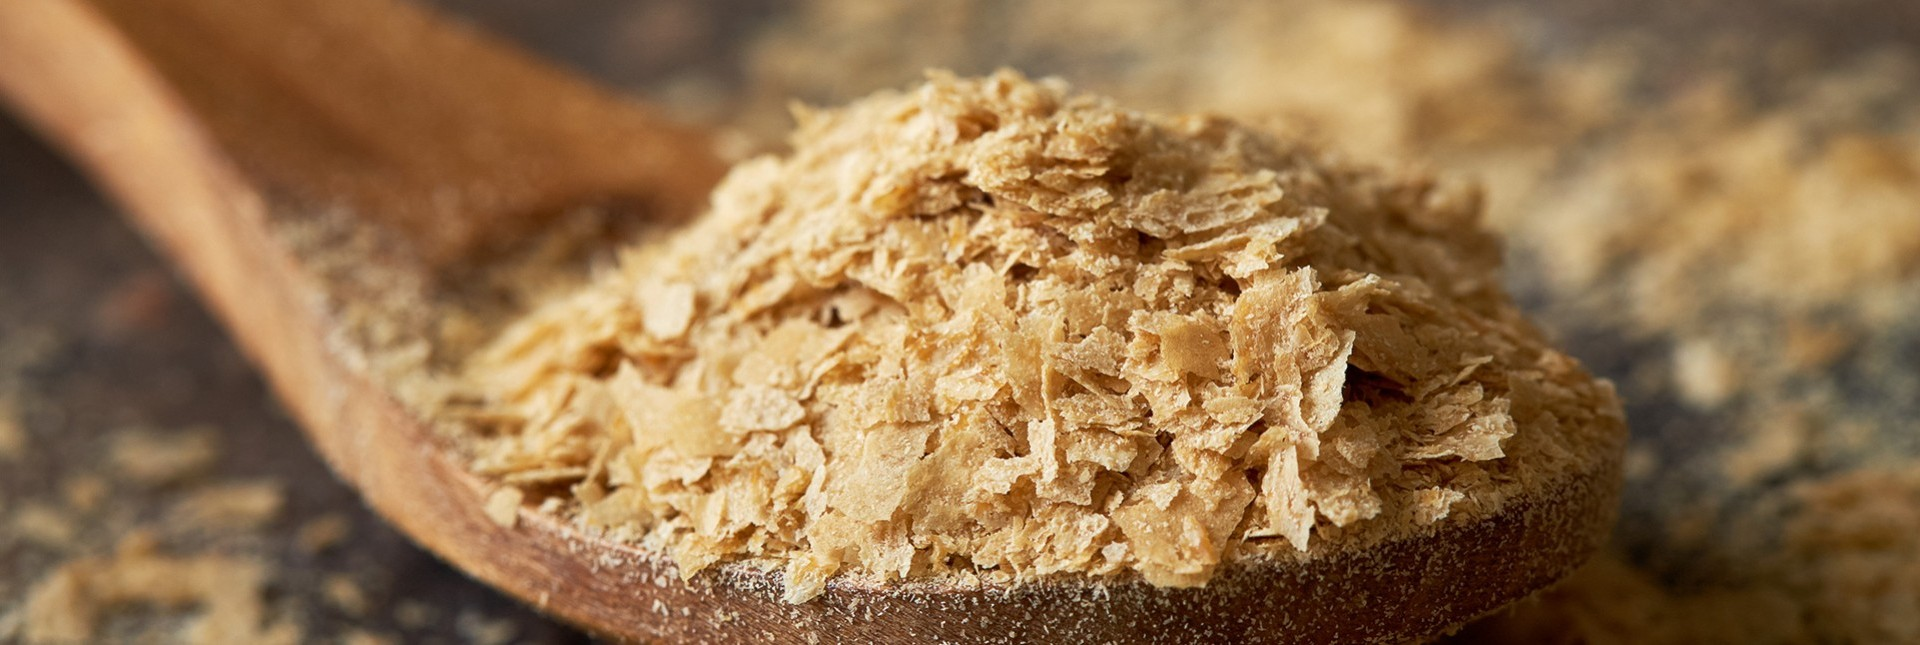 Nutritional Yeast: How It's Made